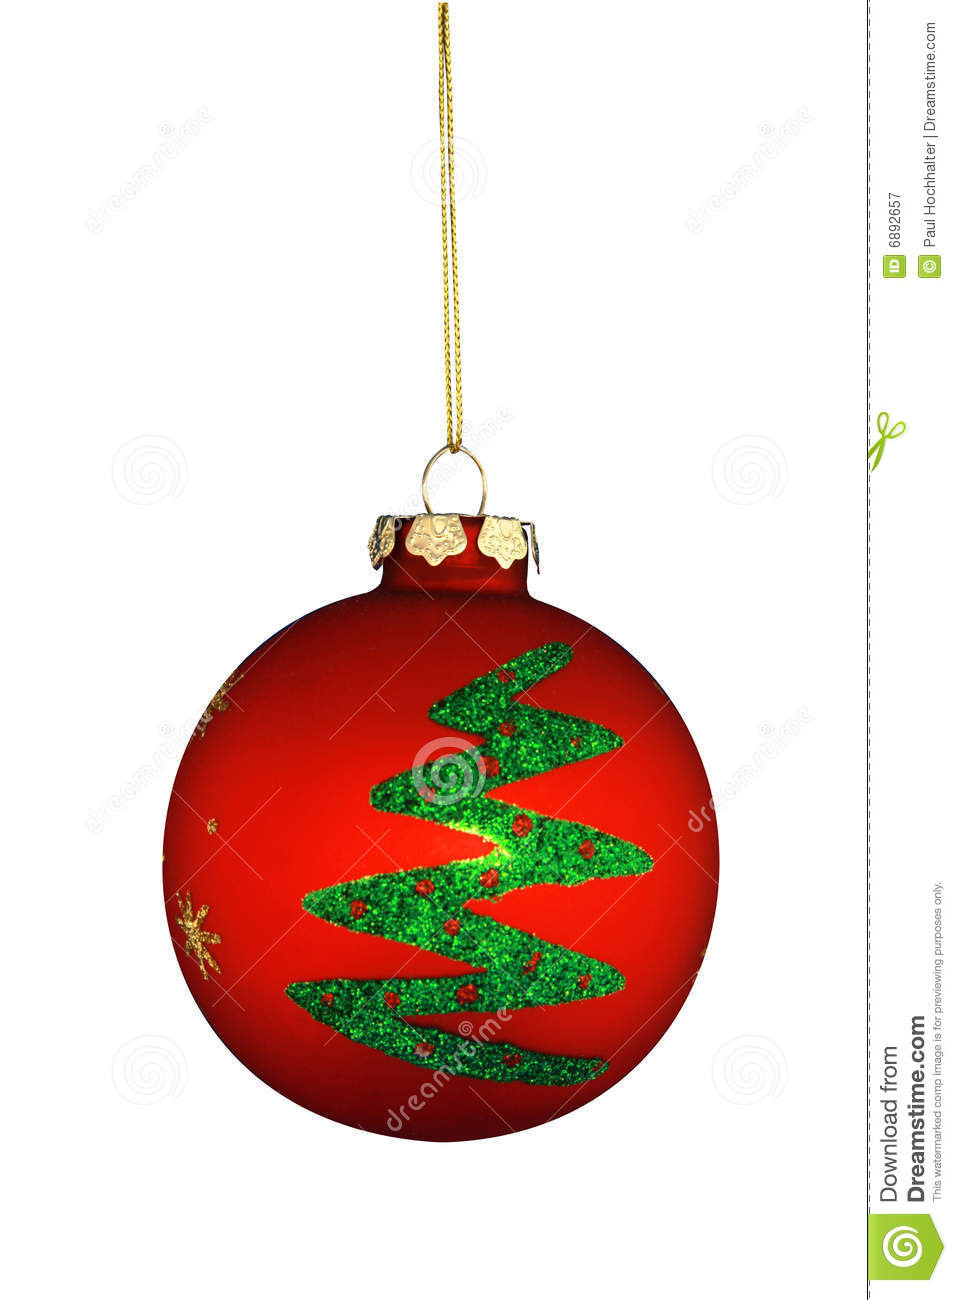 Red Christmas Tree ornaments Inspirational Round Christmas Tree ornament Stock Image Image Of Round Of Attractive 44 Pics Red Christmas Tree ornaments